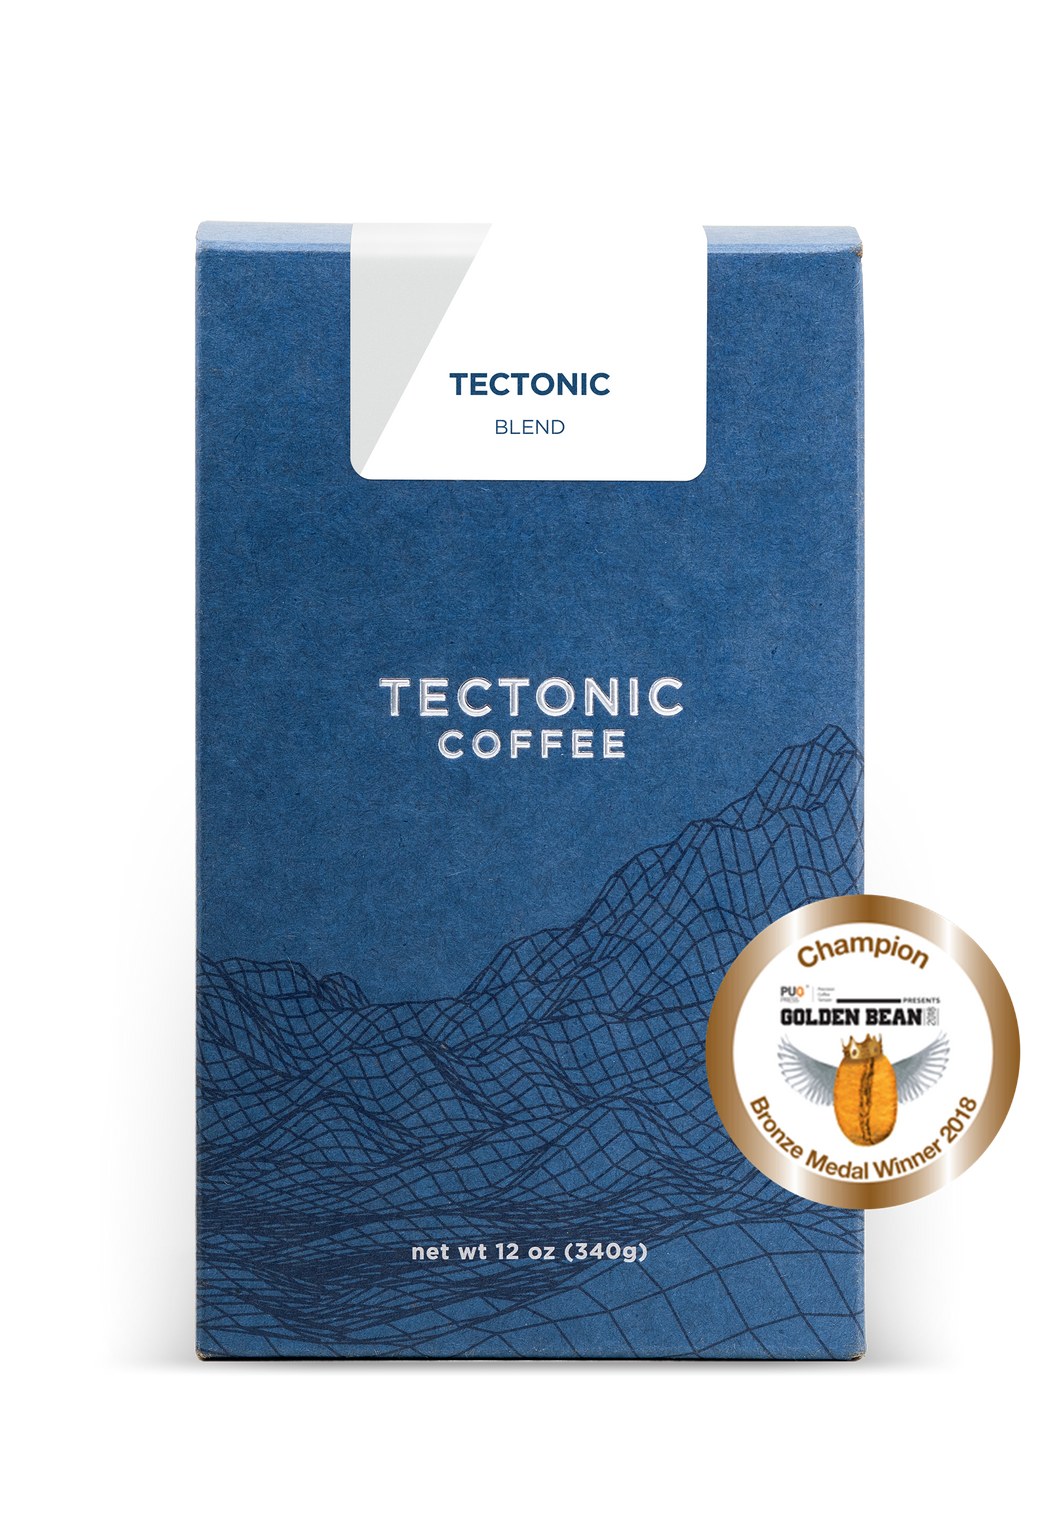 Tectonic Blend